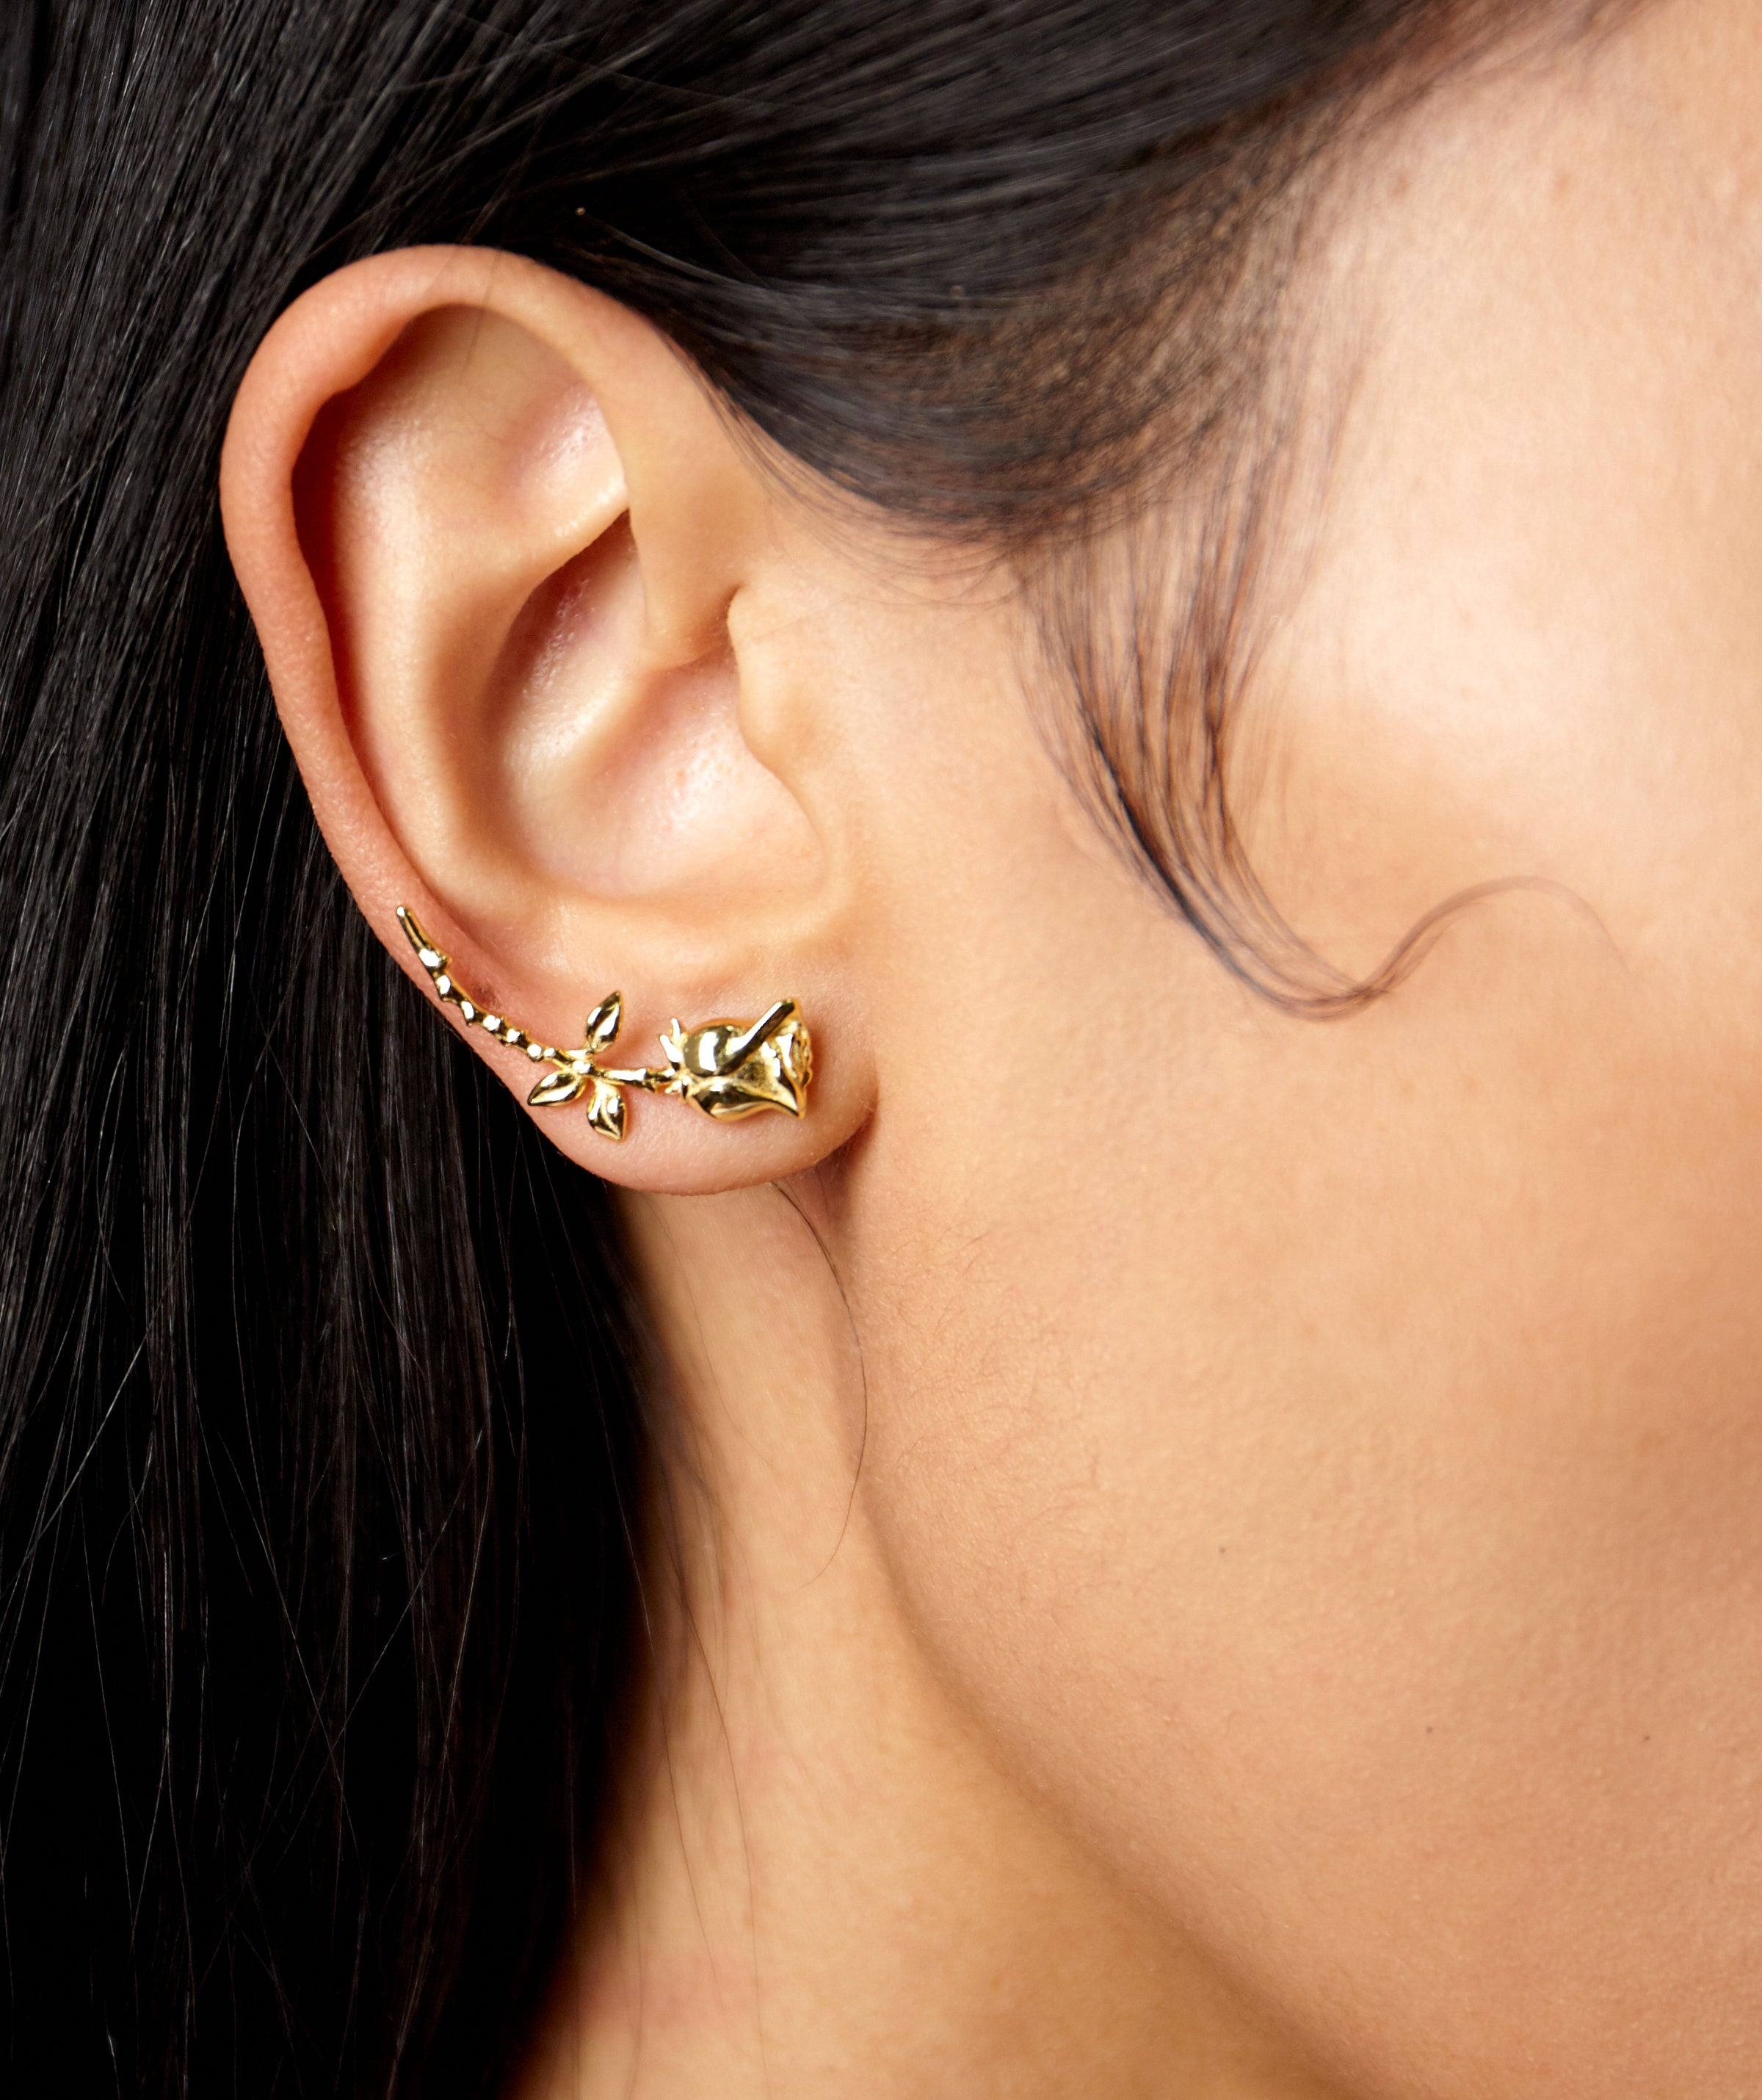 BODEGA ROSE EARRINGS